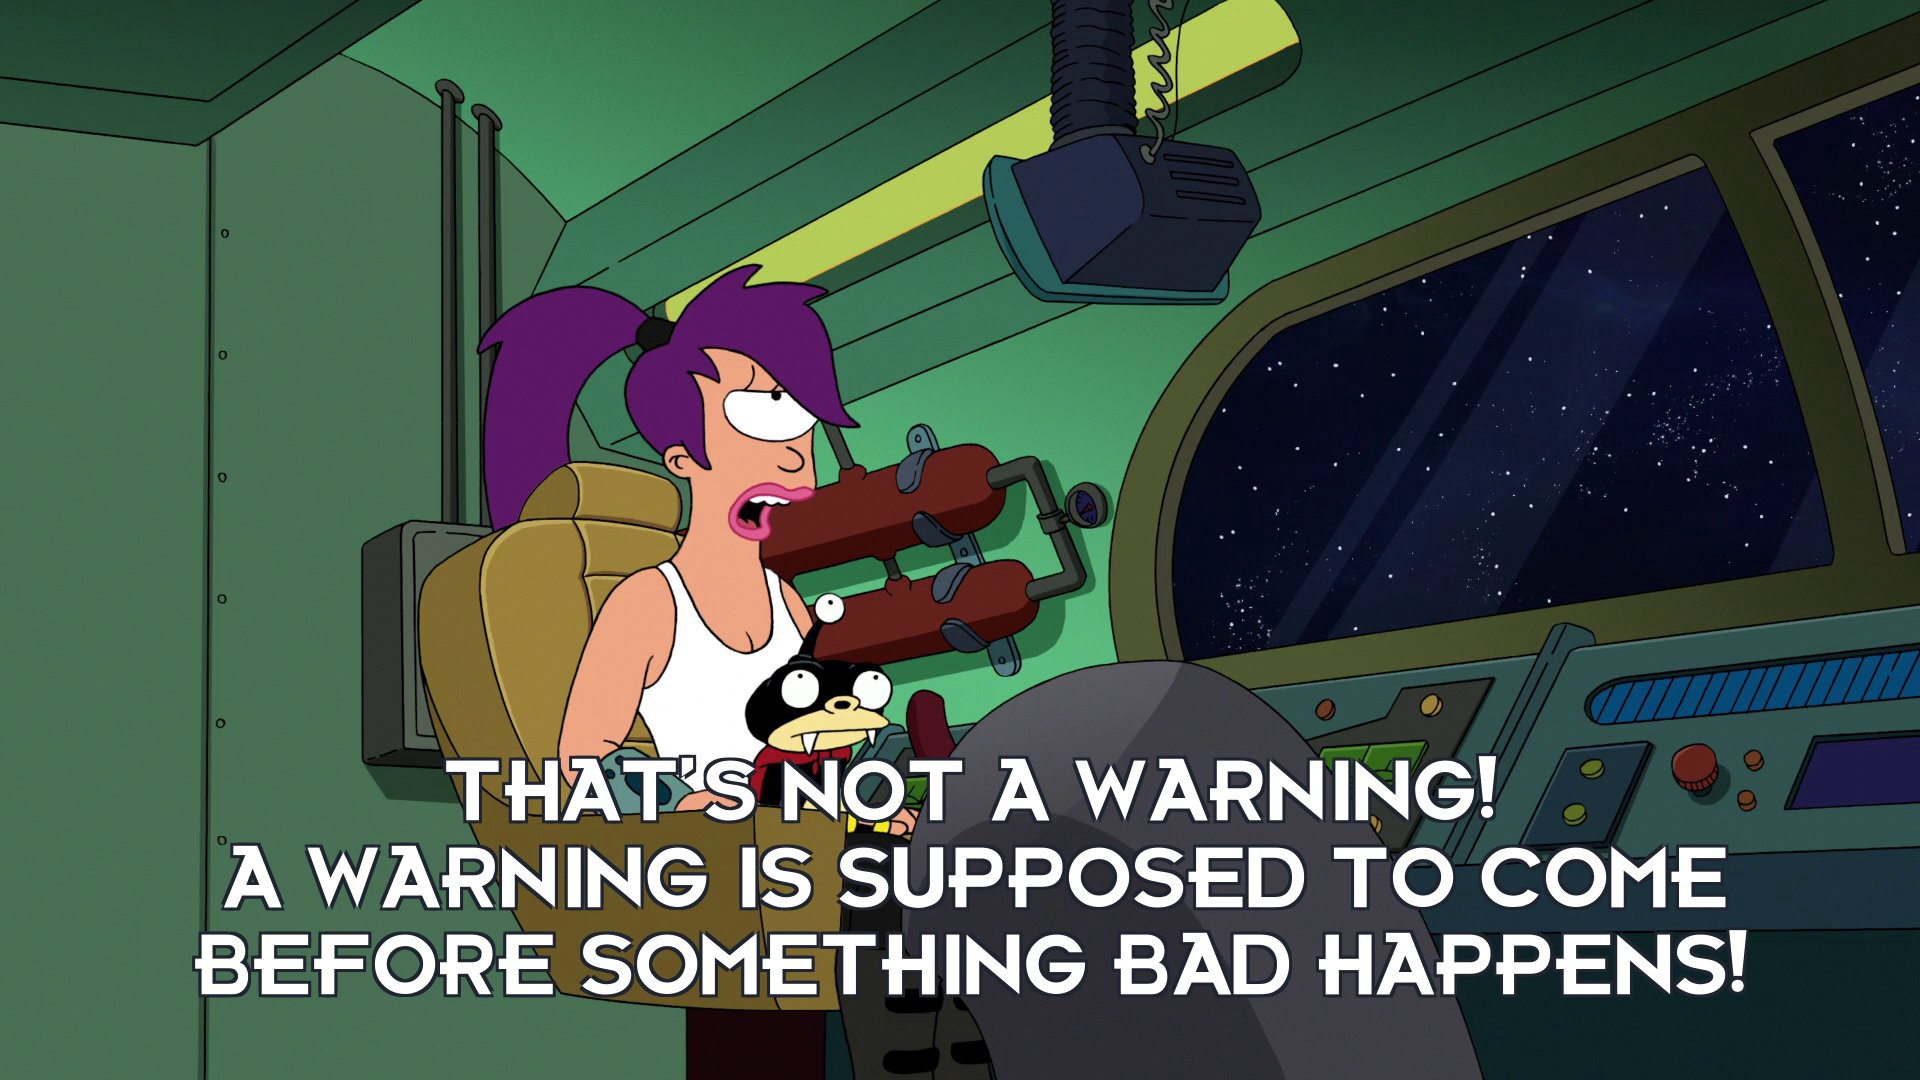 Turanga Leela: That's not a warning! A warning is supposed to come before something bad happens!